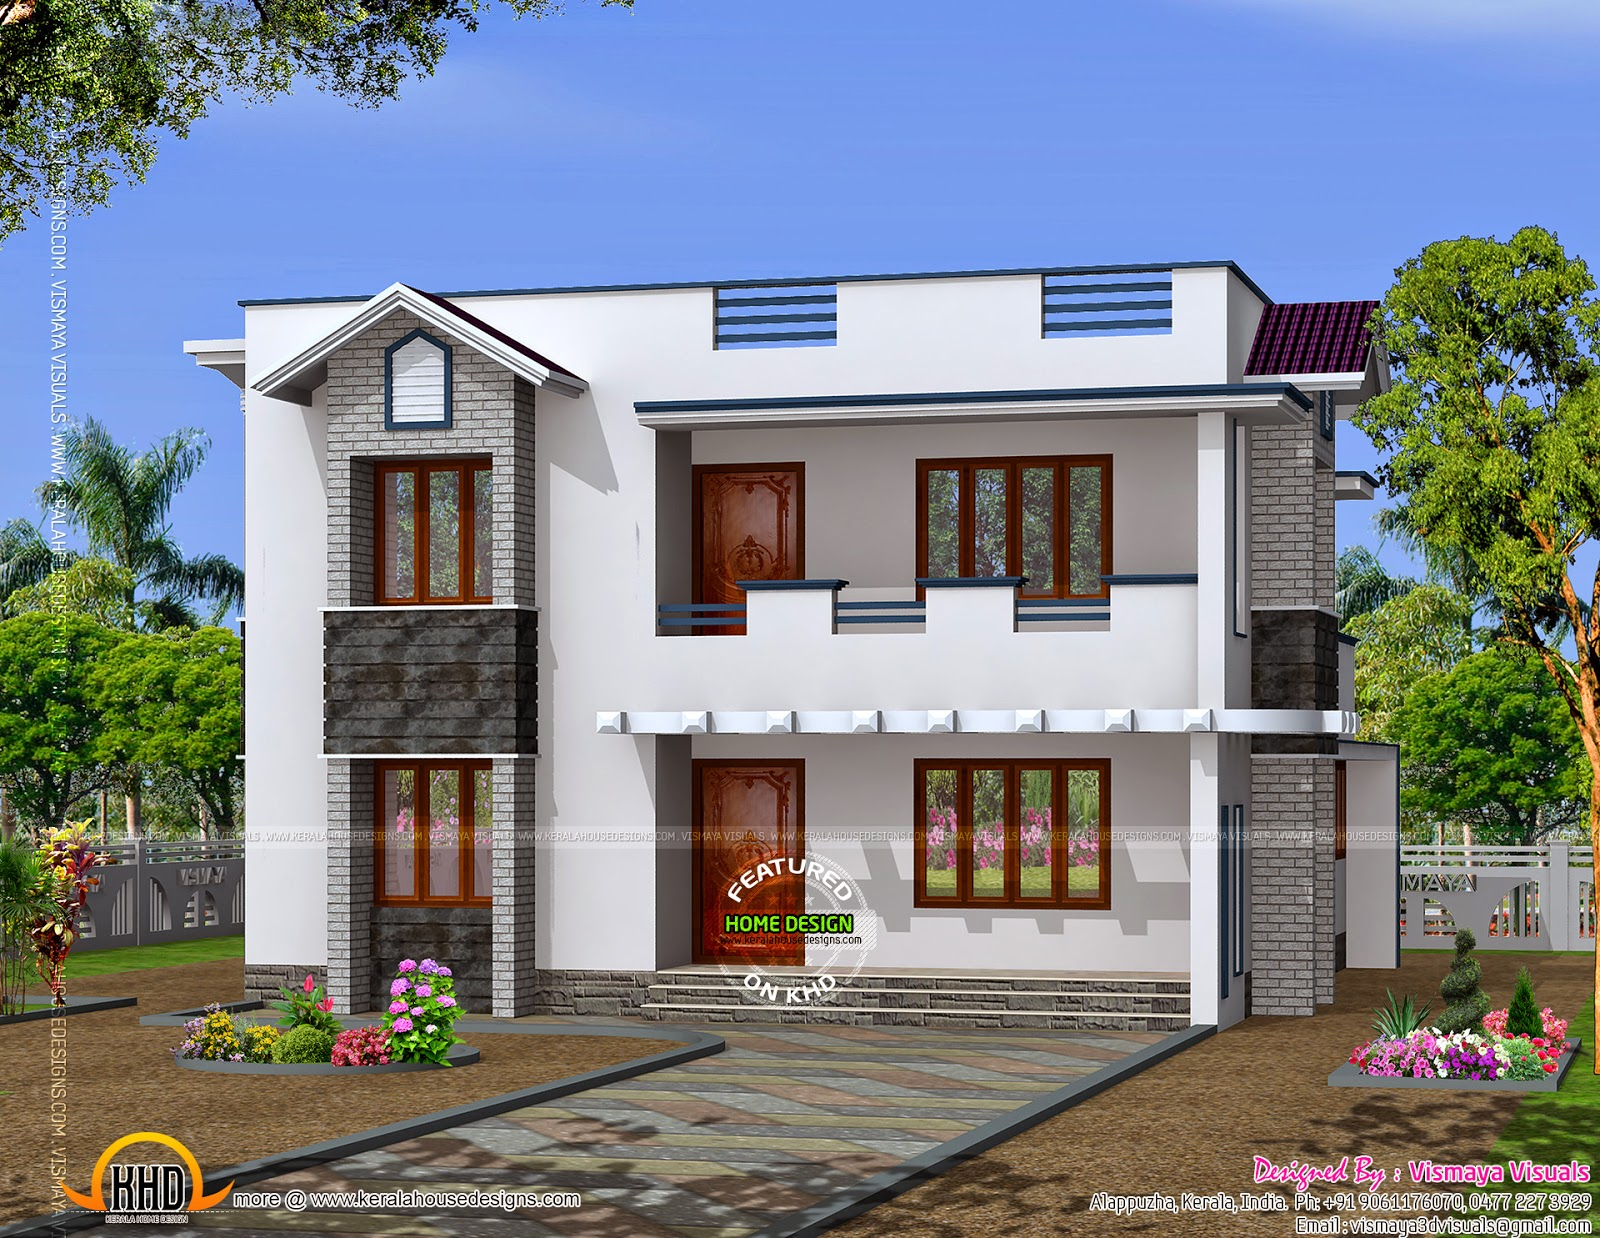 Simple design home kerala home design and floor plans Simple house designs and plans